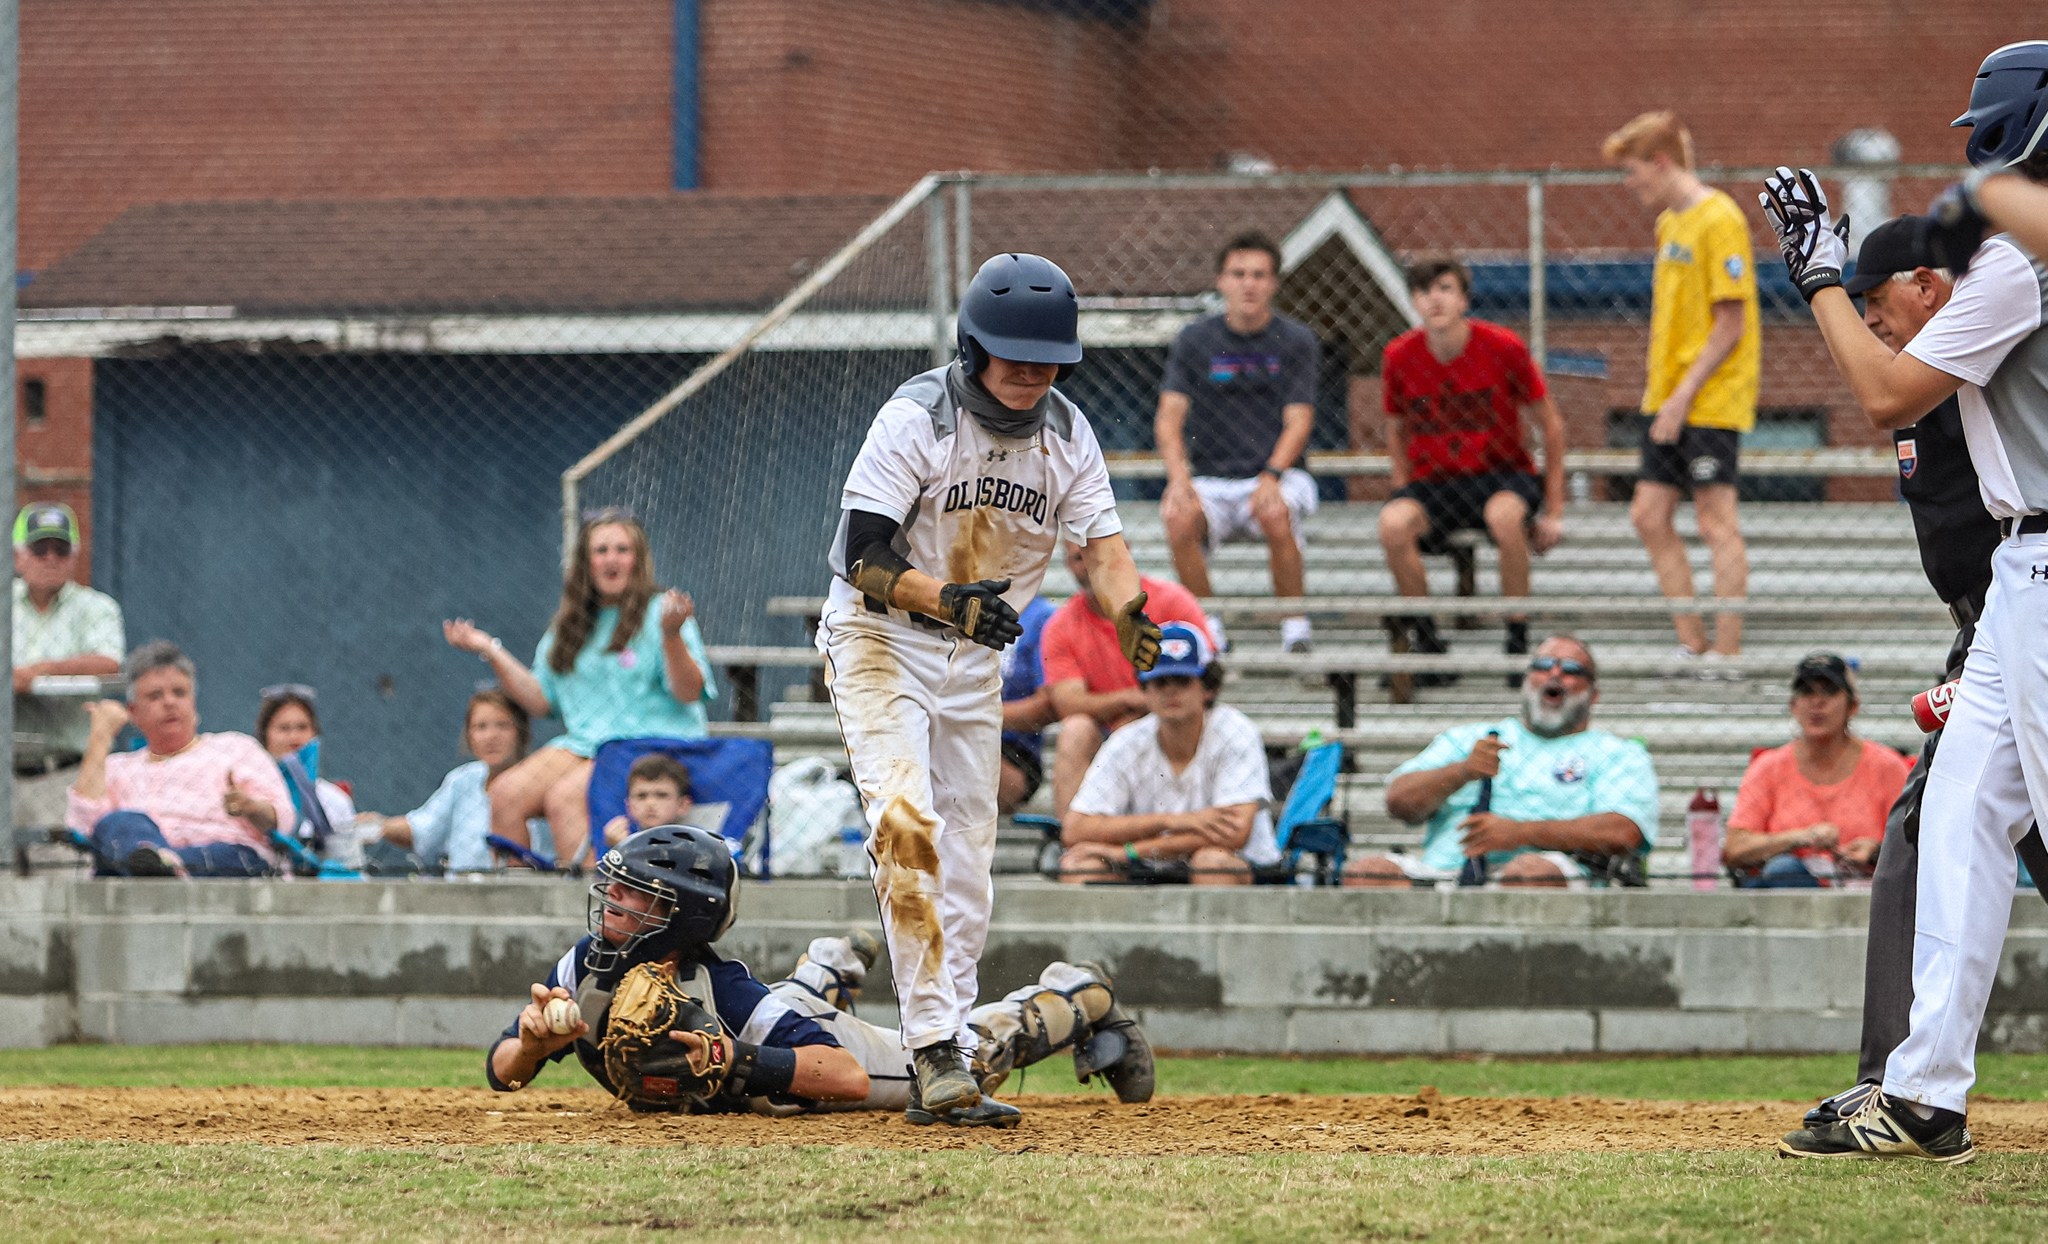 Baseball: Goldsboro Comes Back To Defeat Spring Creek (PHOTO GALLERY)